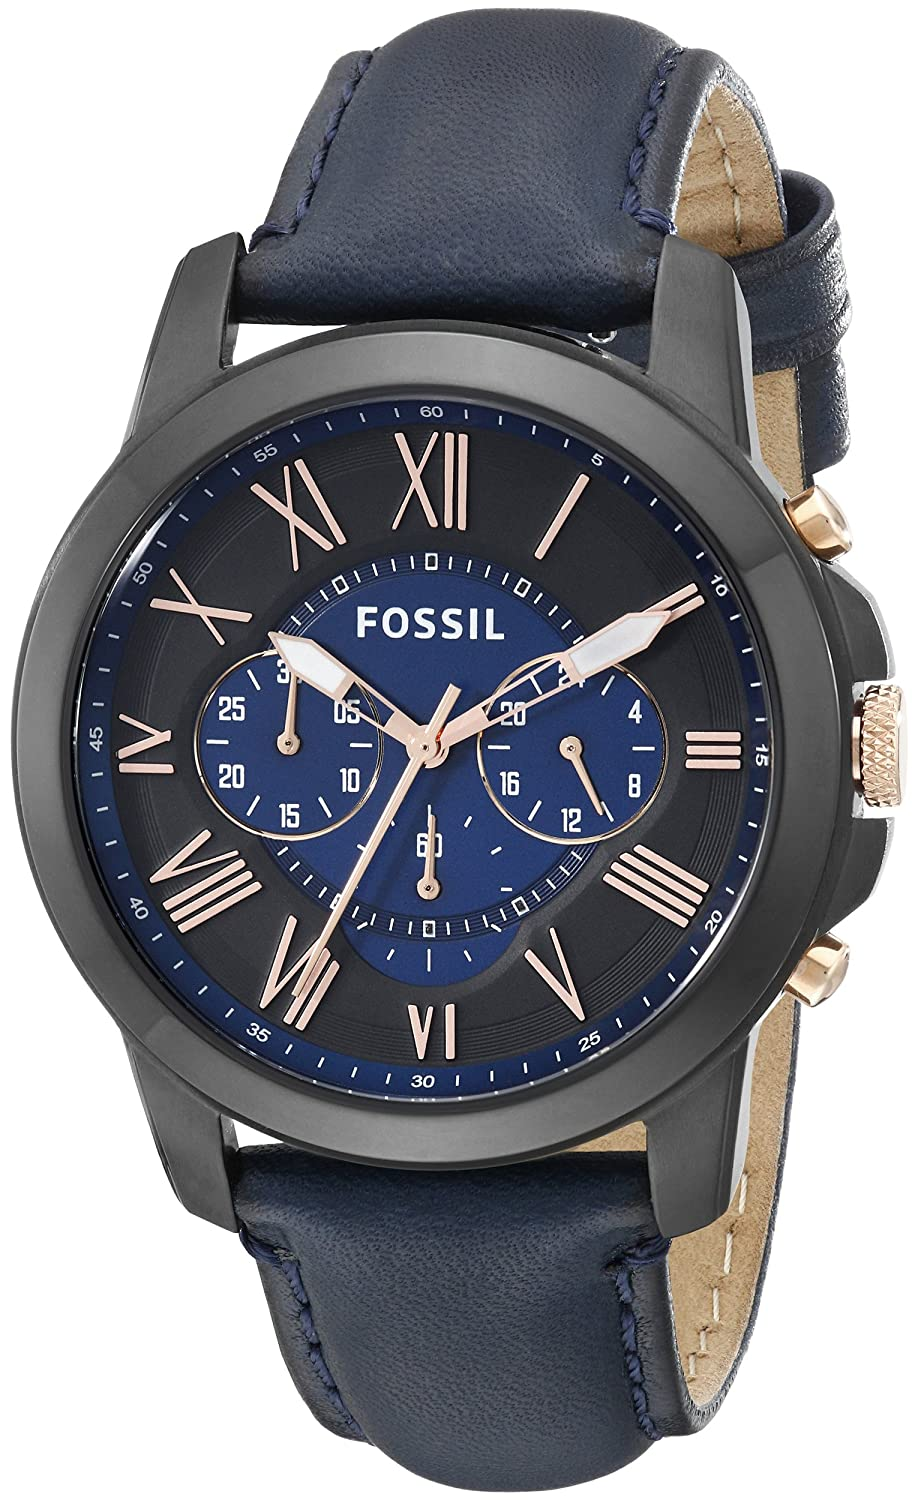 buy fossil grant analog blue dial men s watch fs5061 online at buy fossil grant analog blue dial men s watch fs5061 online at low prices in amazon in